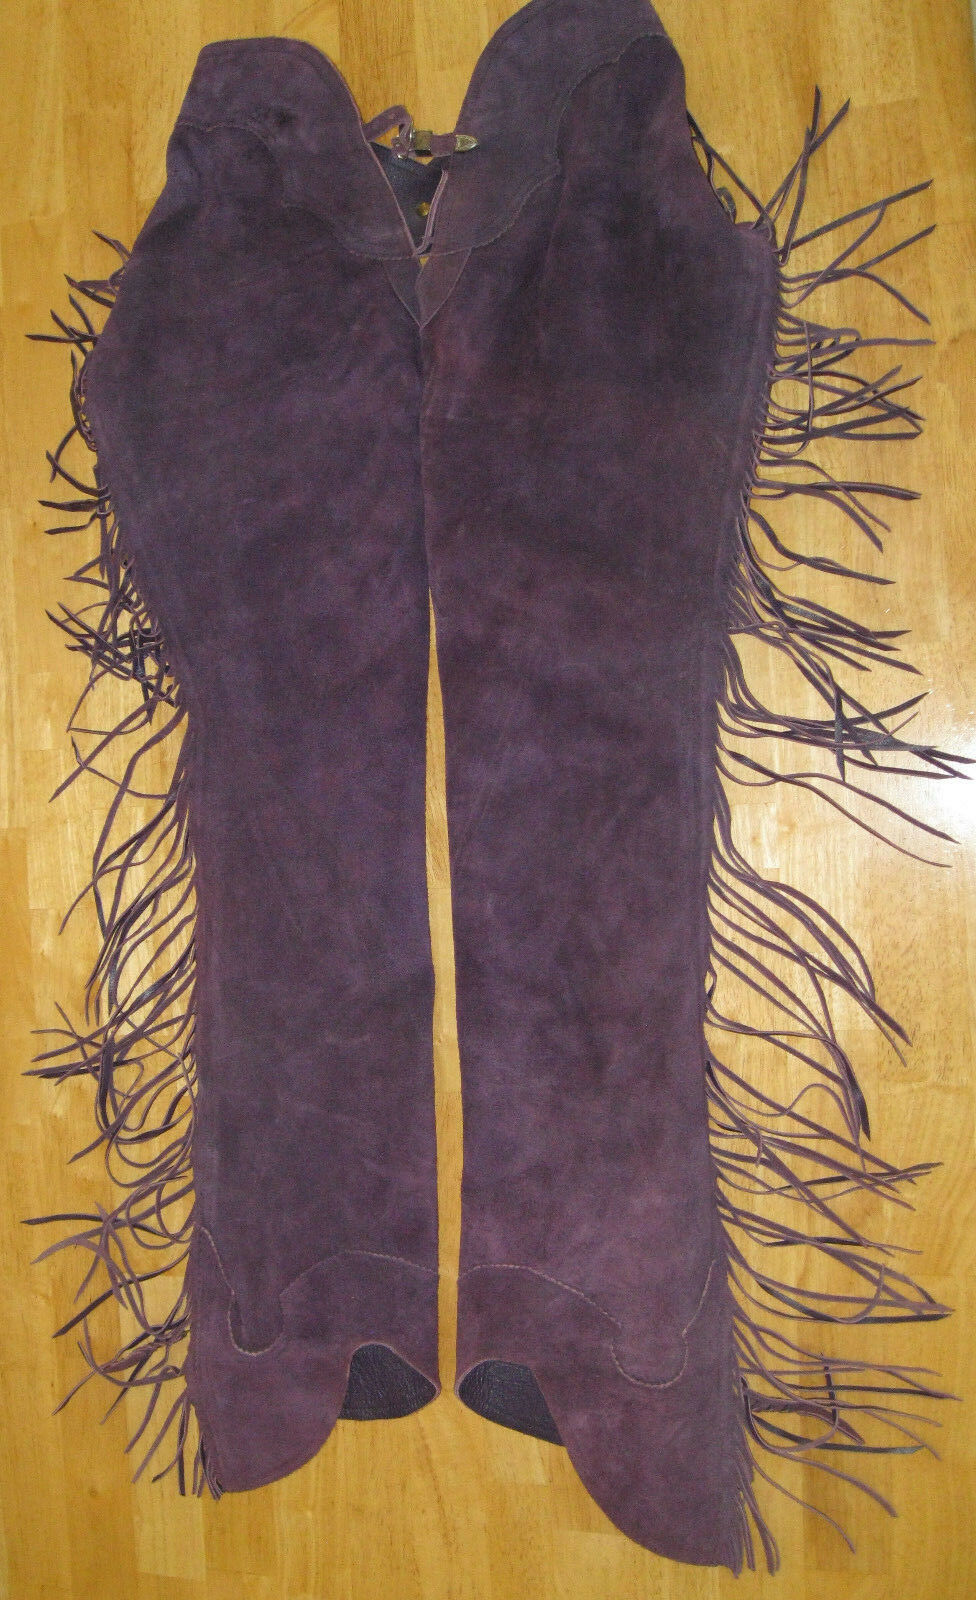 Woods Western Chaps Show Apparel Leather Suede Purple